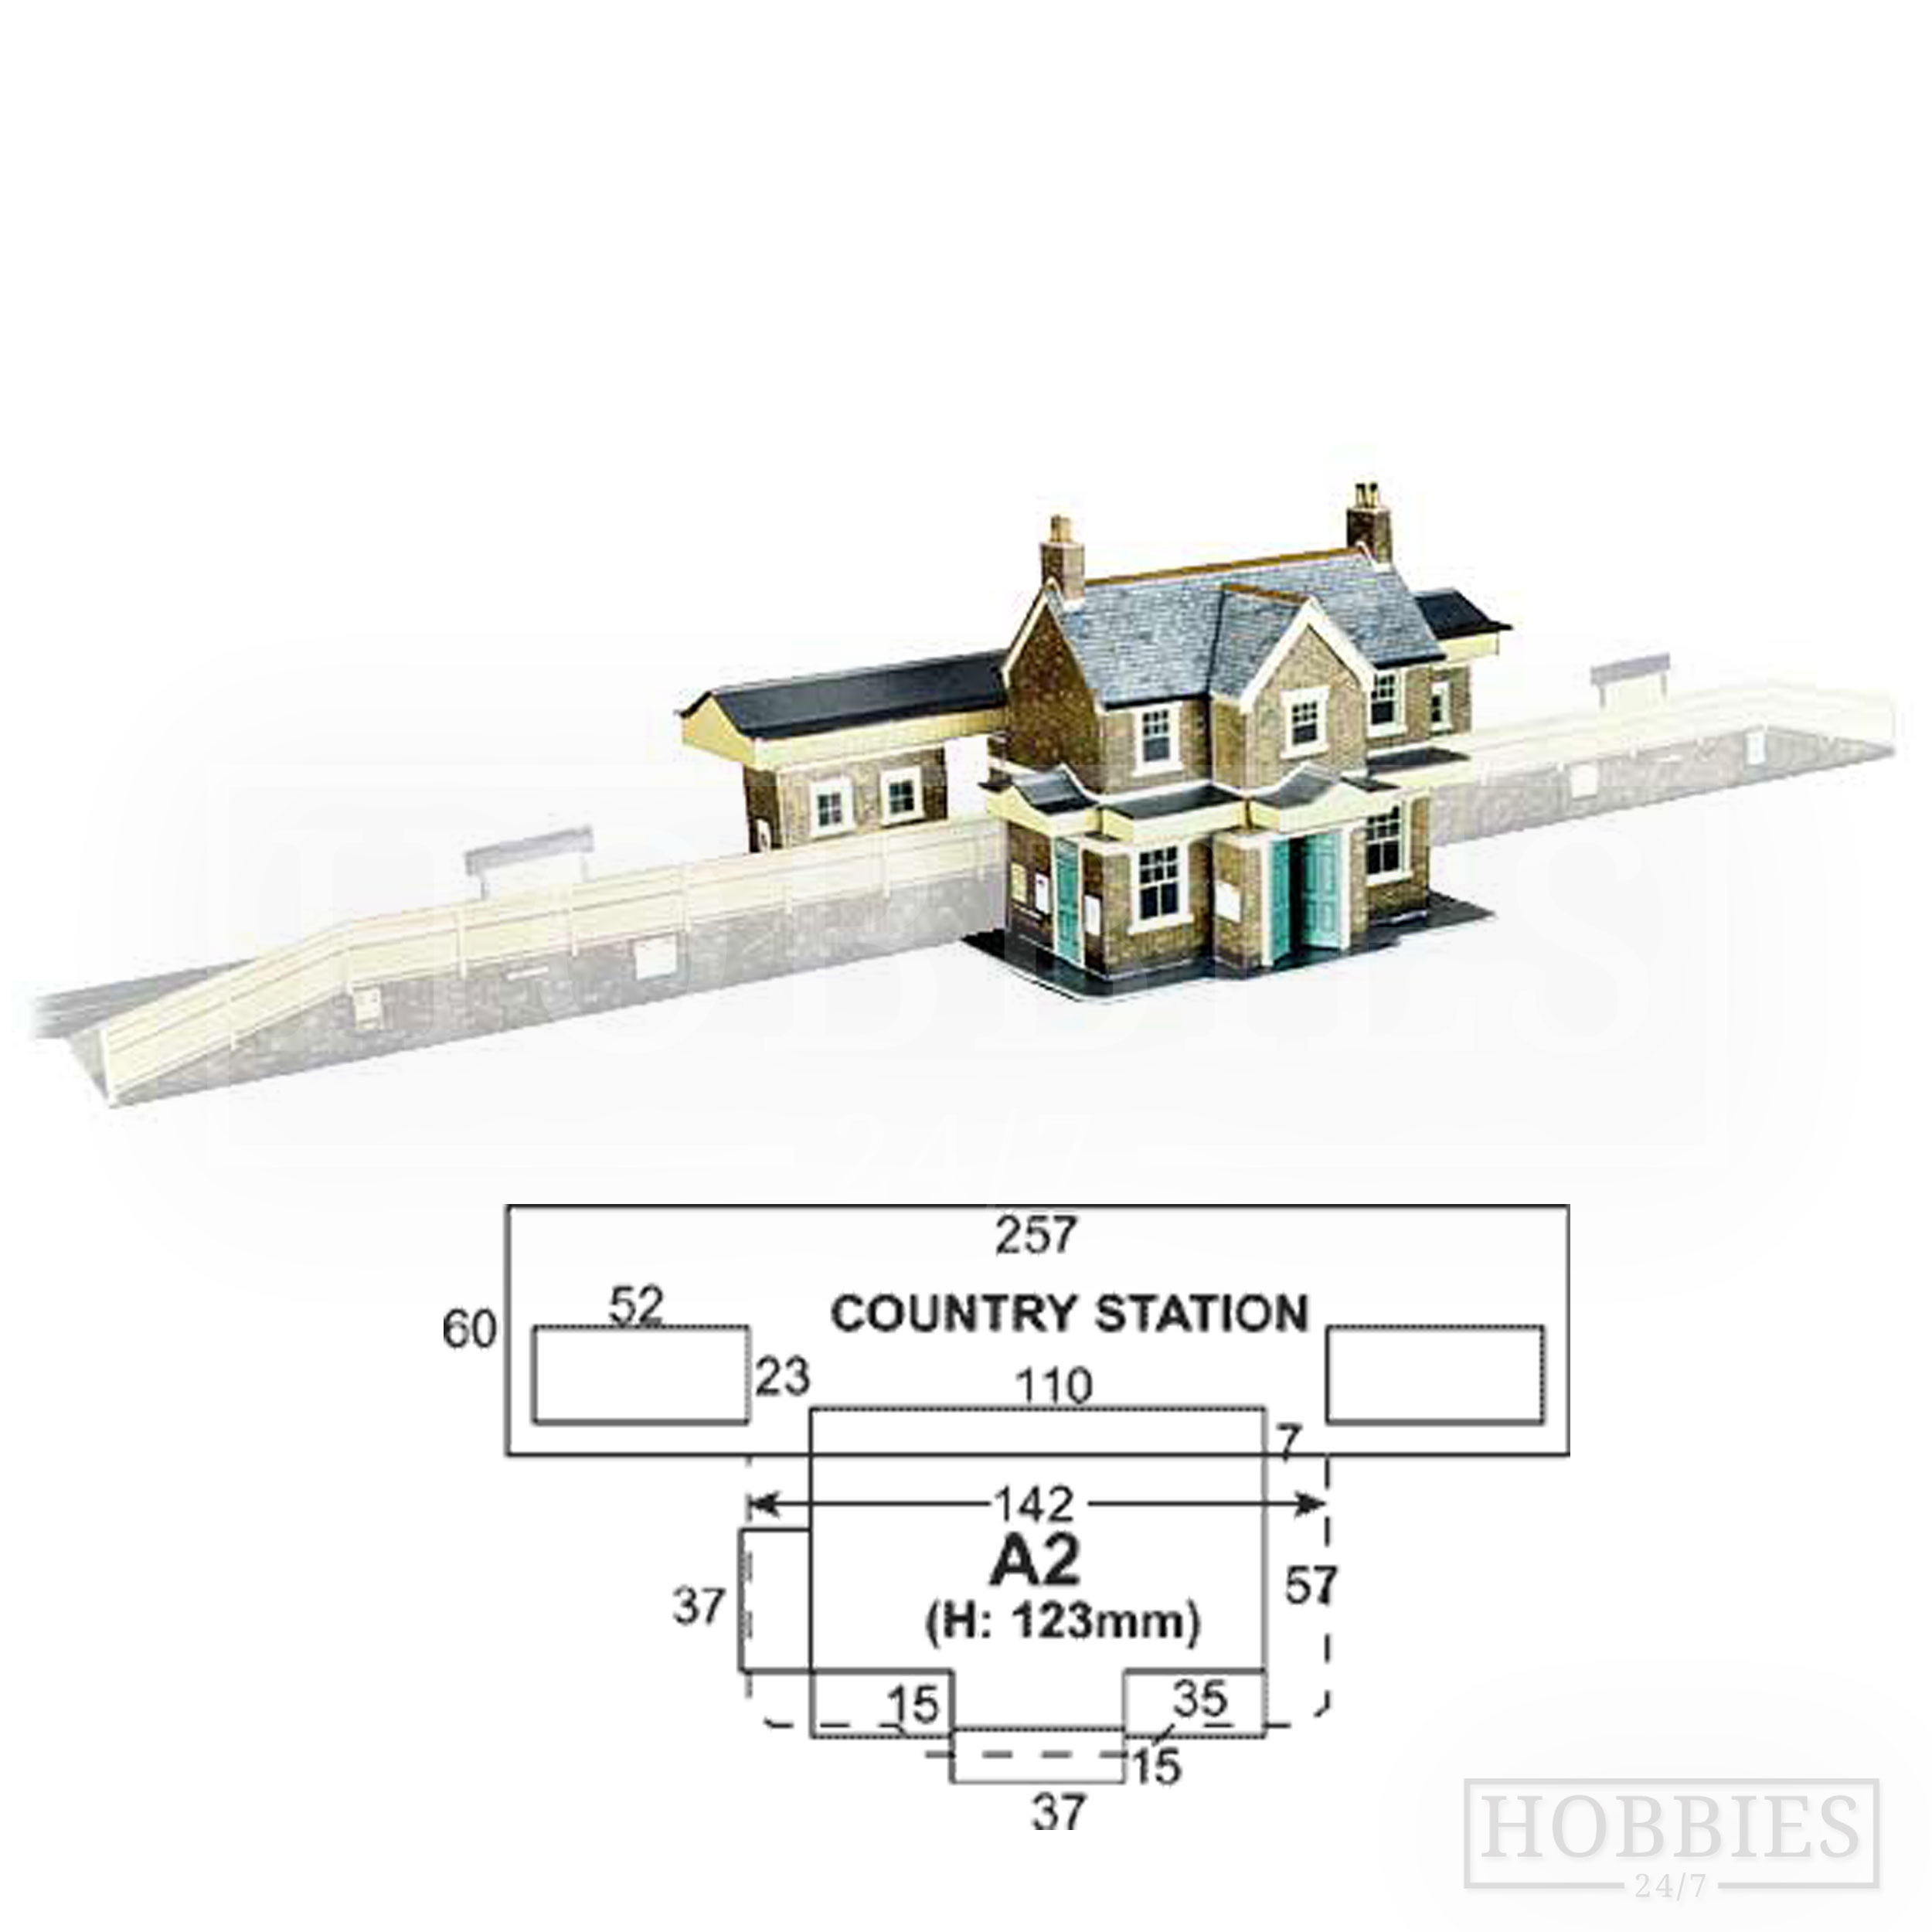 A2 Country Station Building Superquick Card Kit